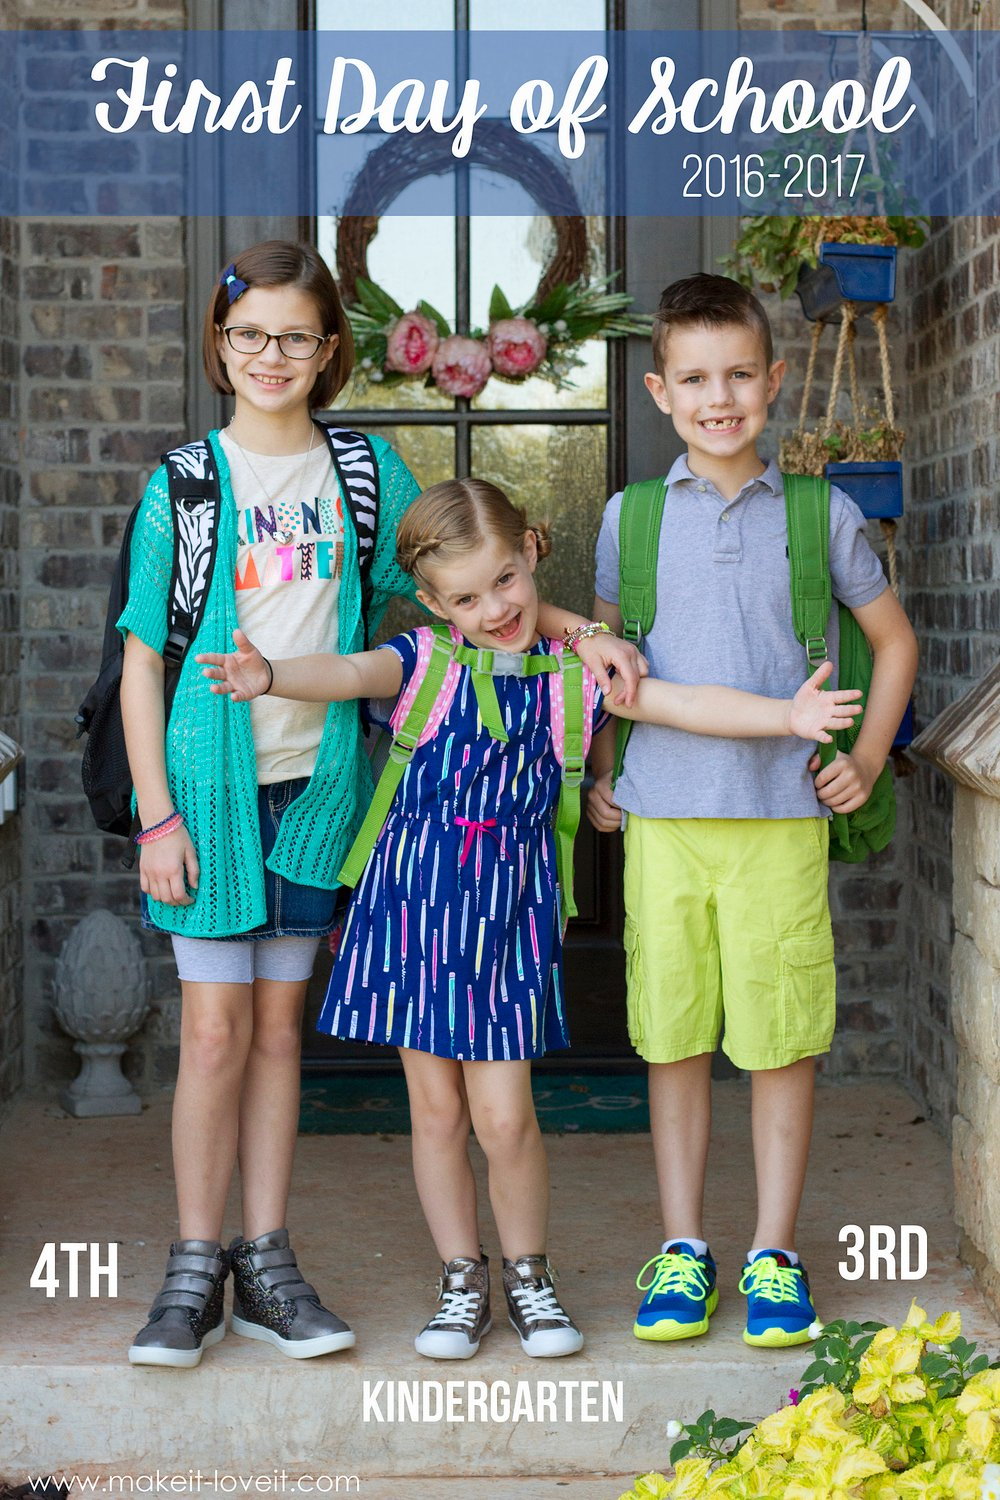 My kids are Back To School…4th, 3rd, and Kinder!!